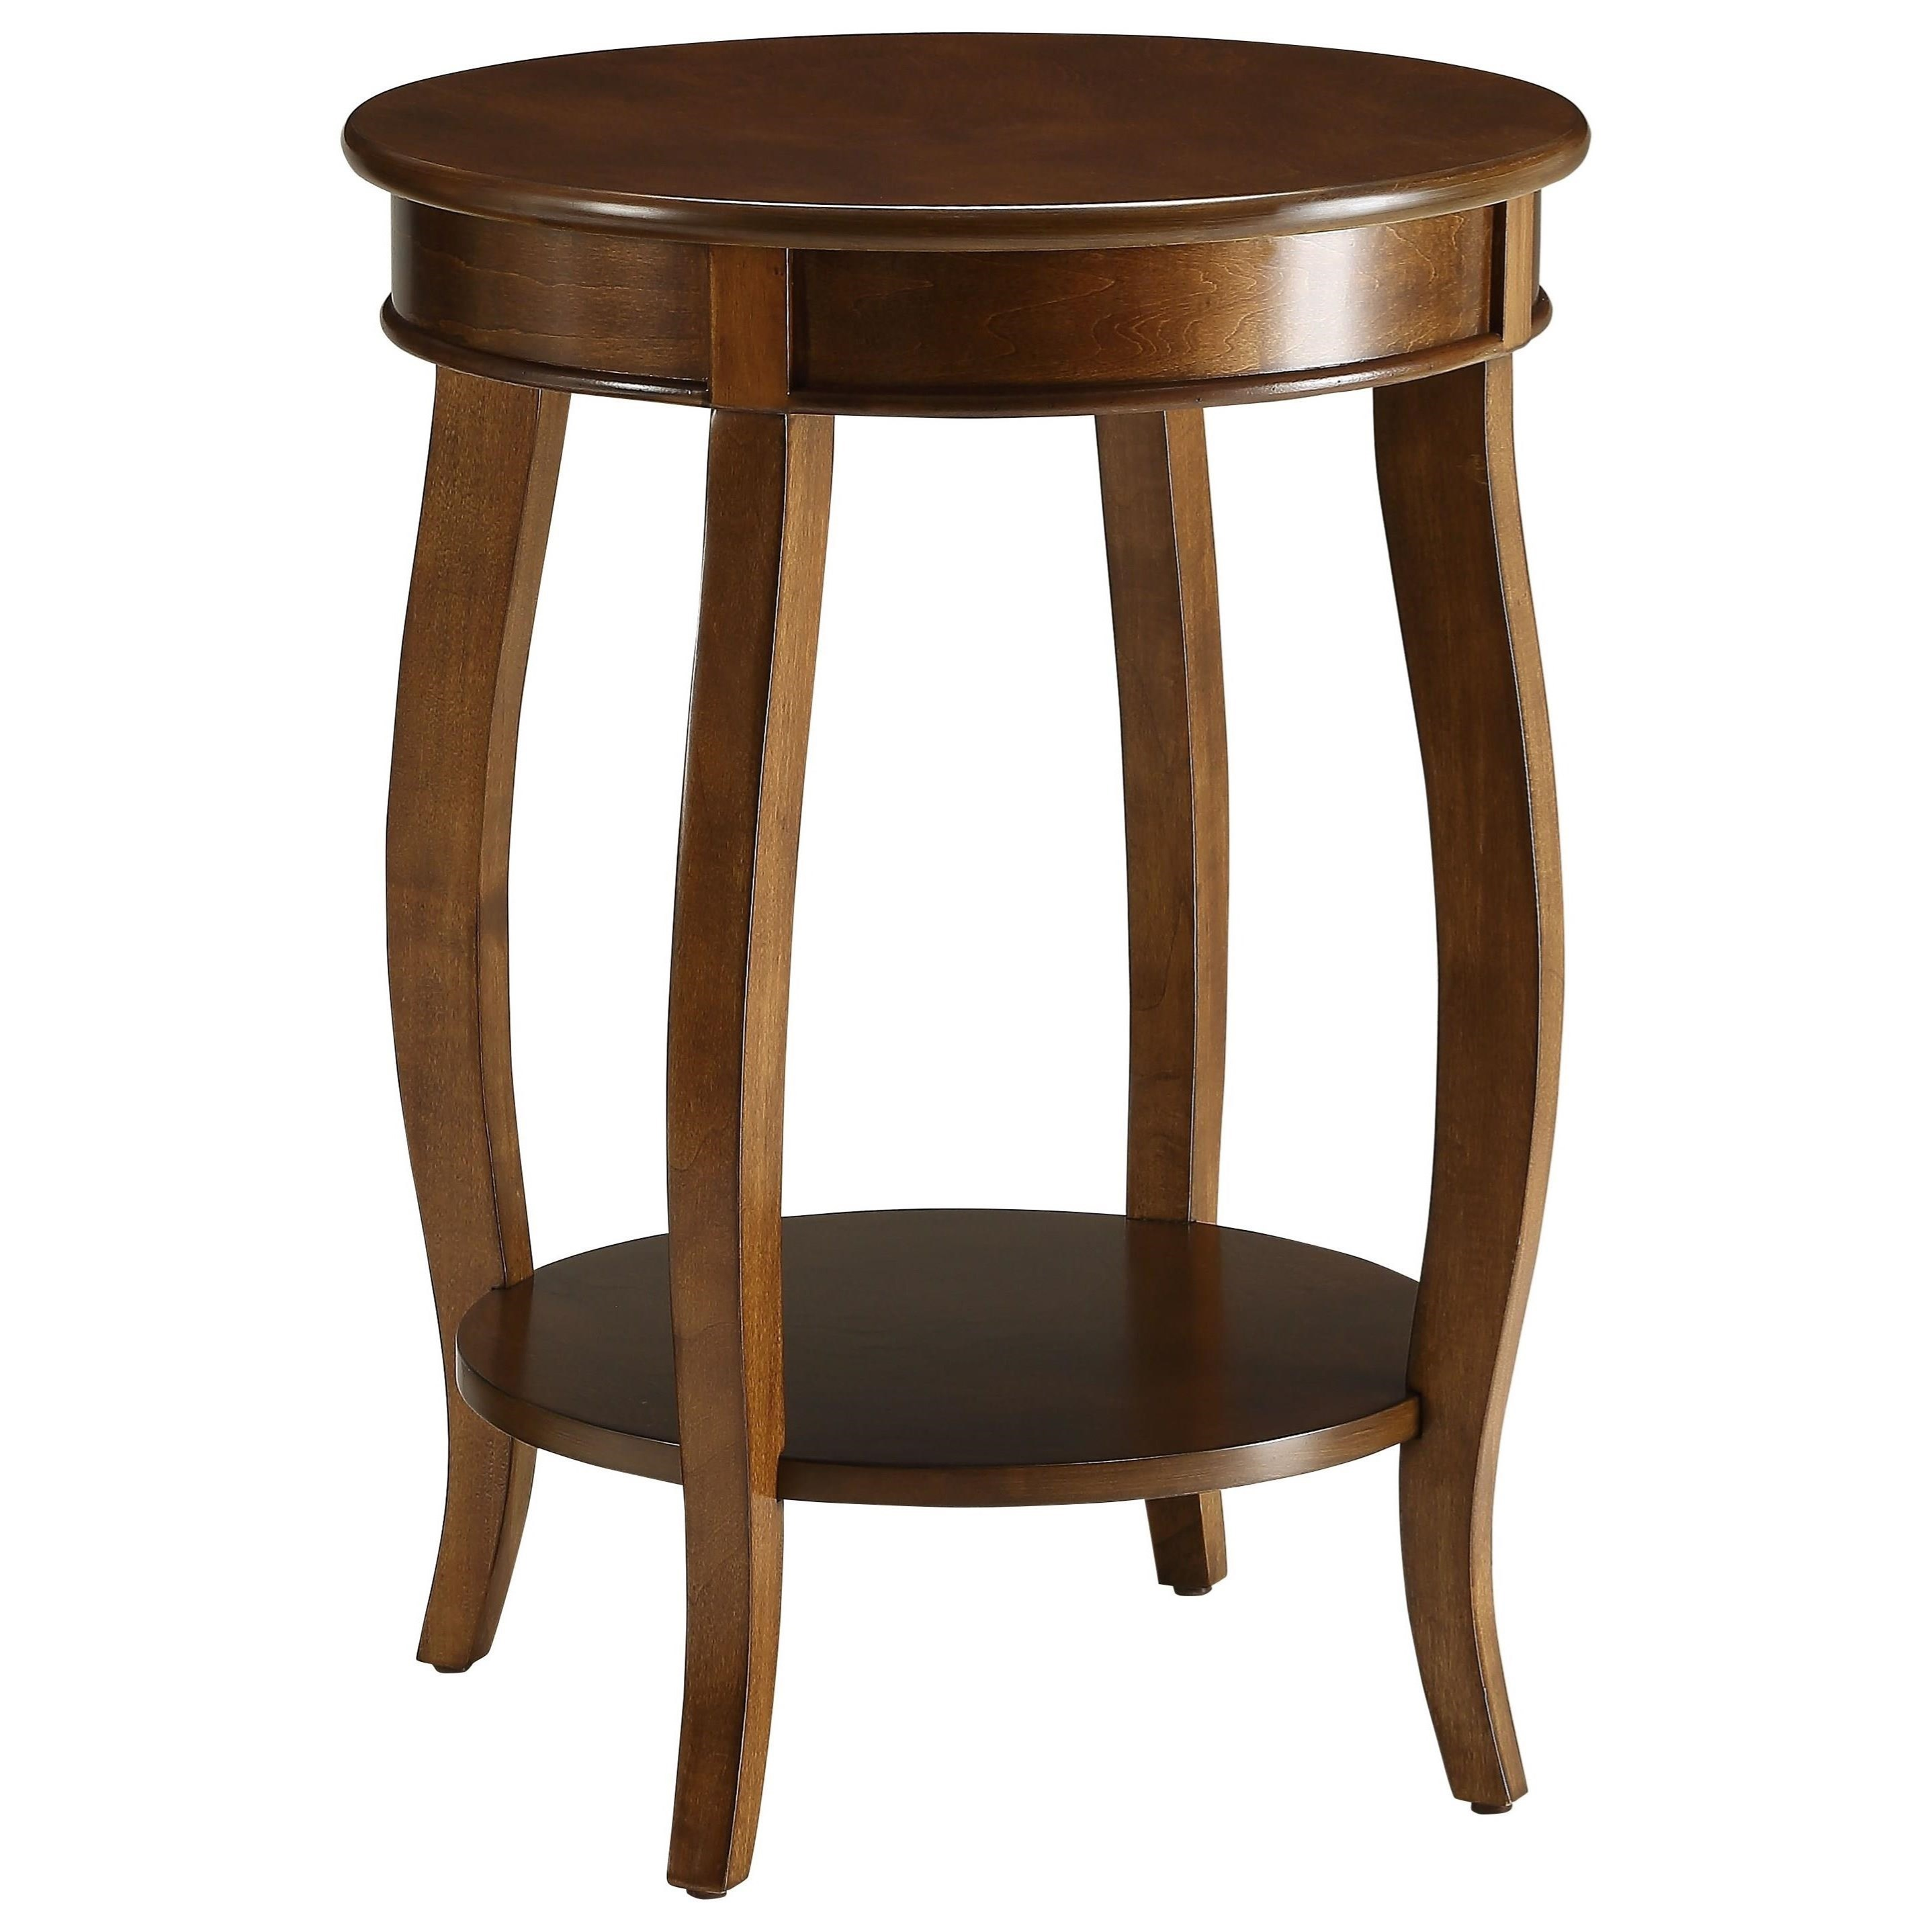 Aberta Side Table by Acme Furniture at A1 Furniture & Mattress